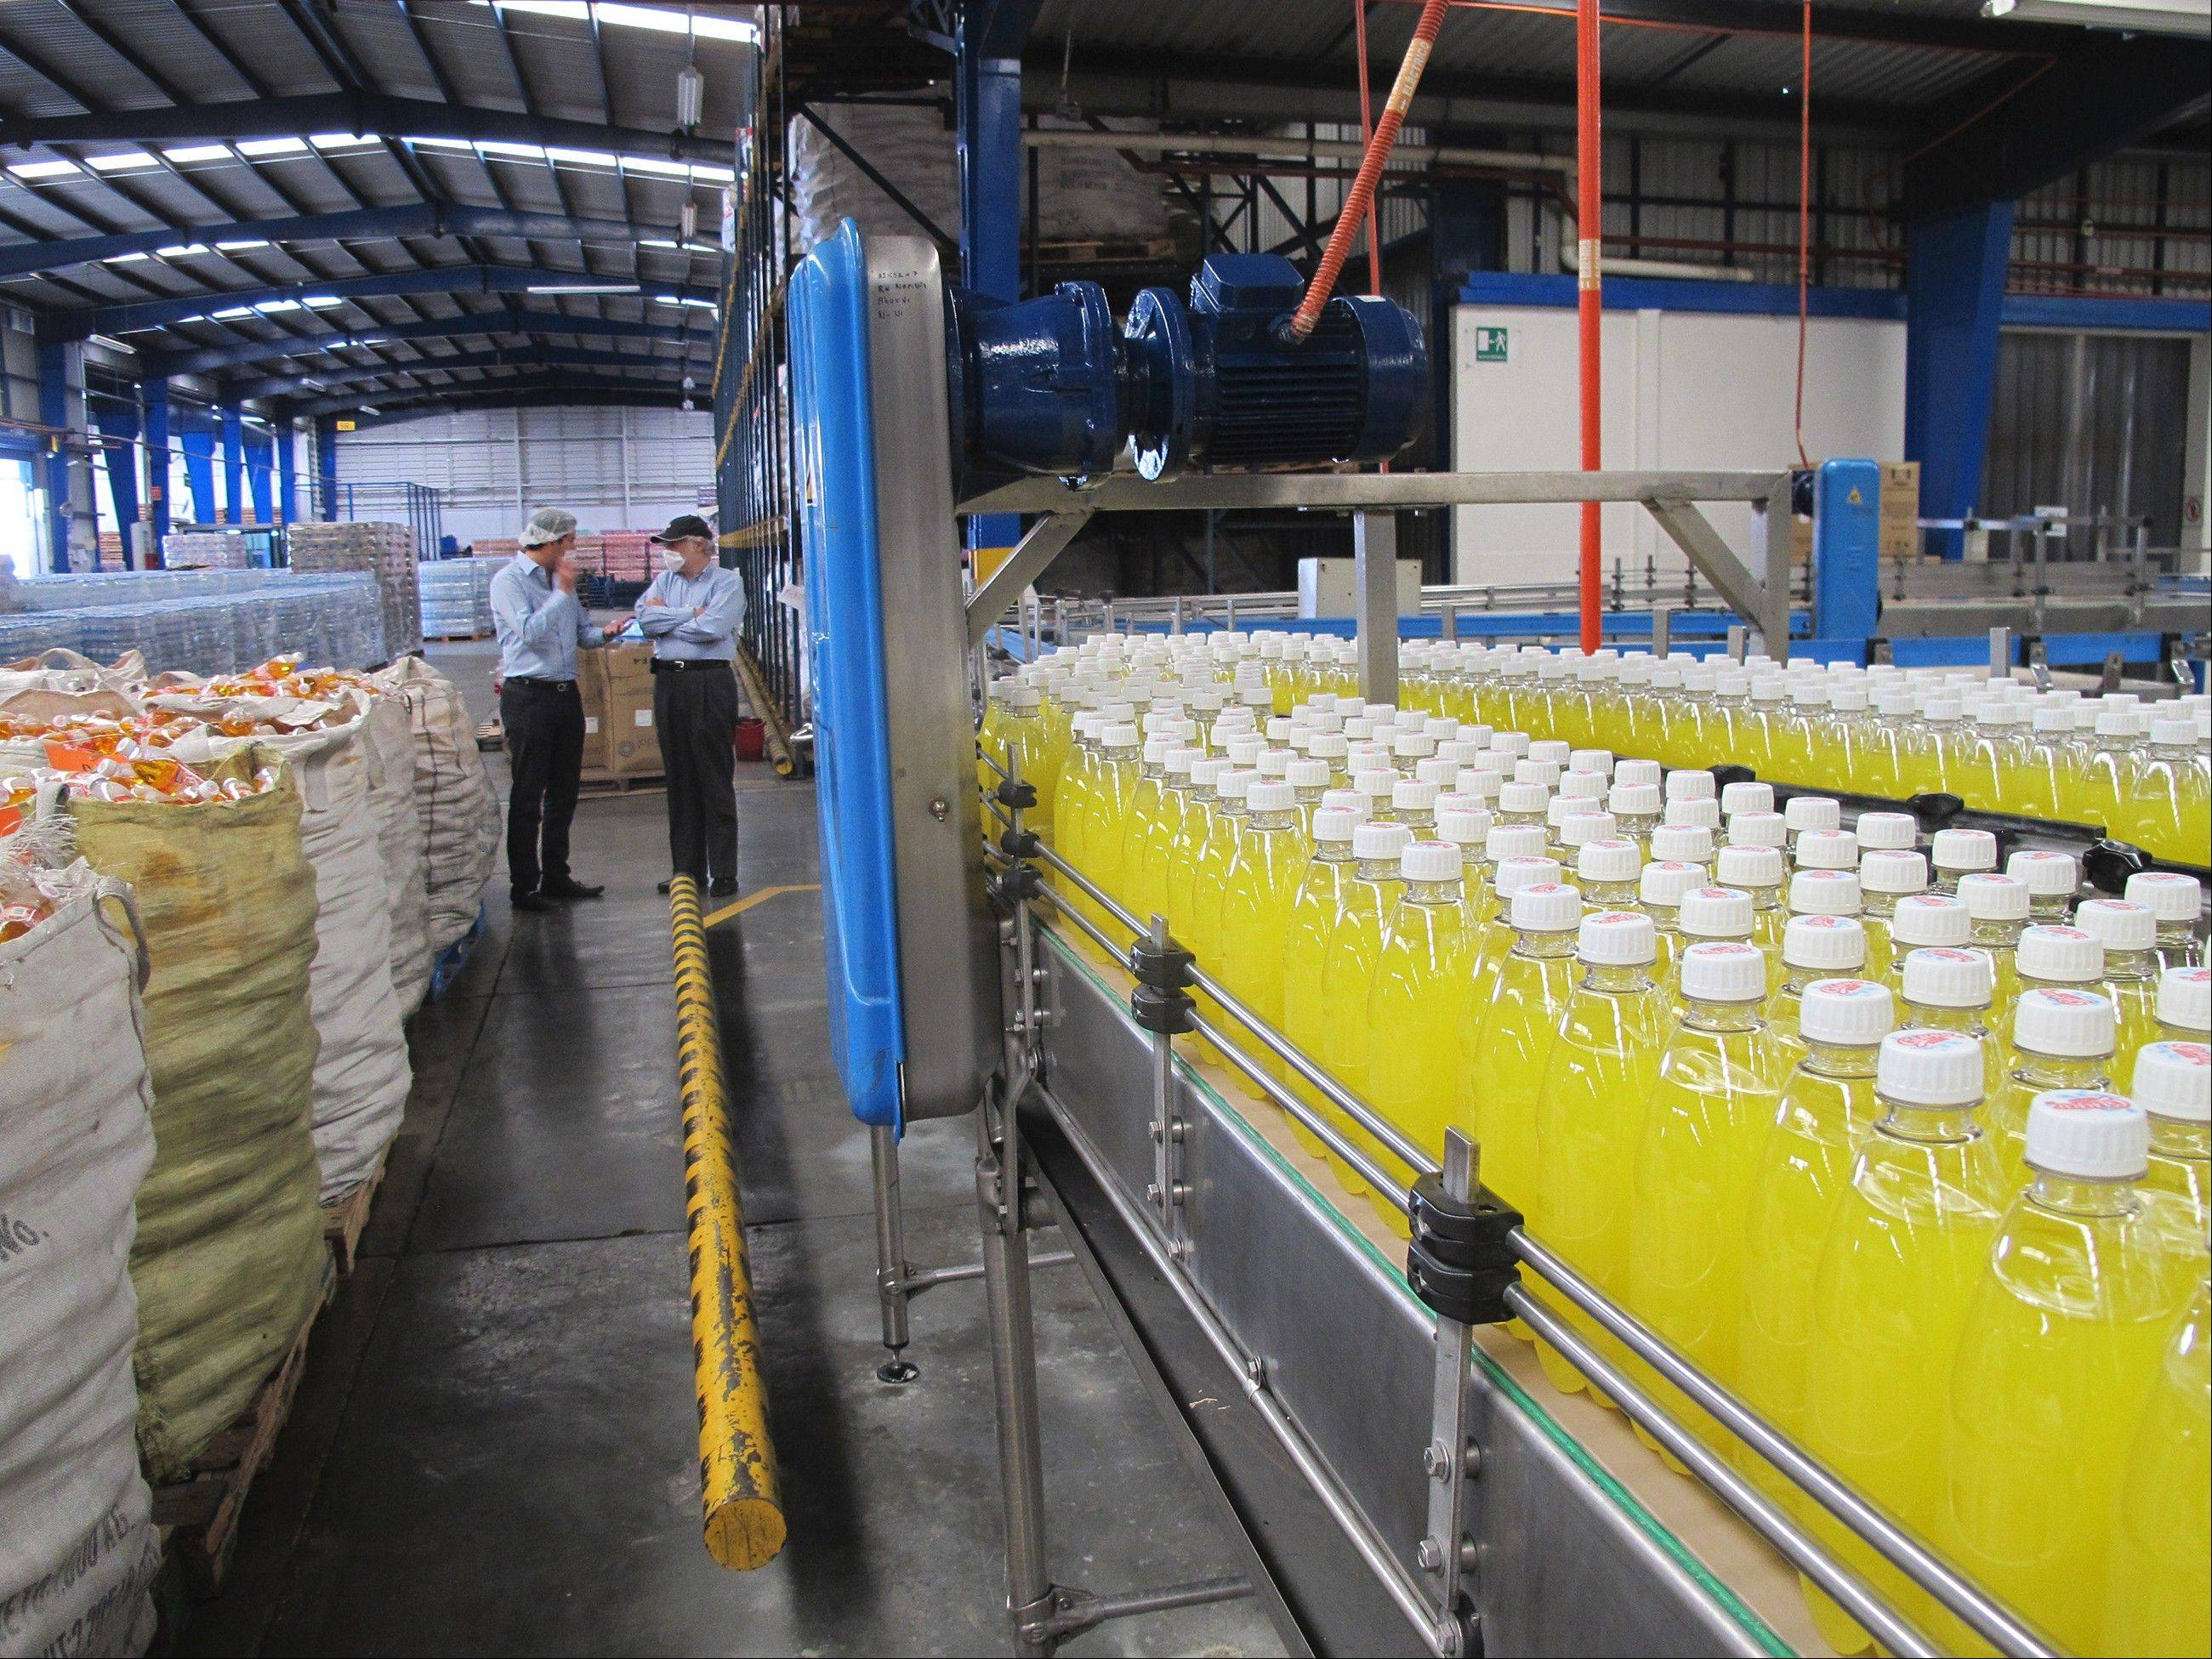 Gugar Soda's Oaxaca factory produces several types of drinks, including these pineapple sodas. Mexico is the world's top consumer of soft drinks at 163 liters per capita a year, 40 percent more than the U.S.